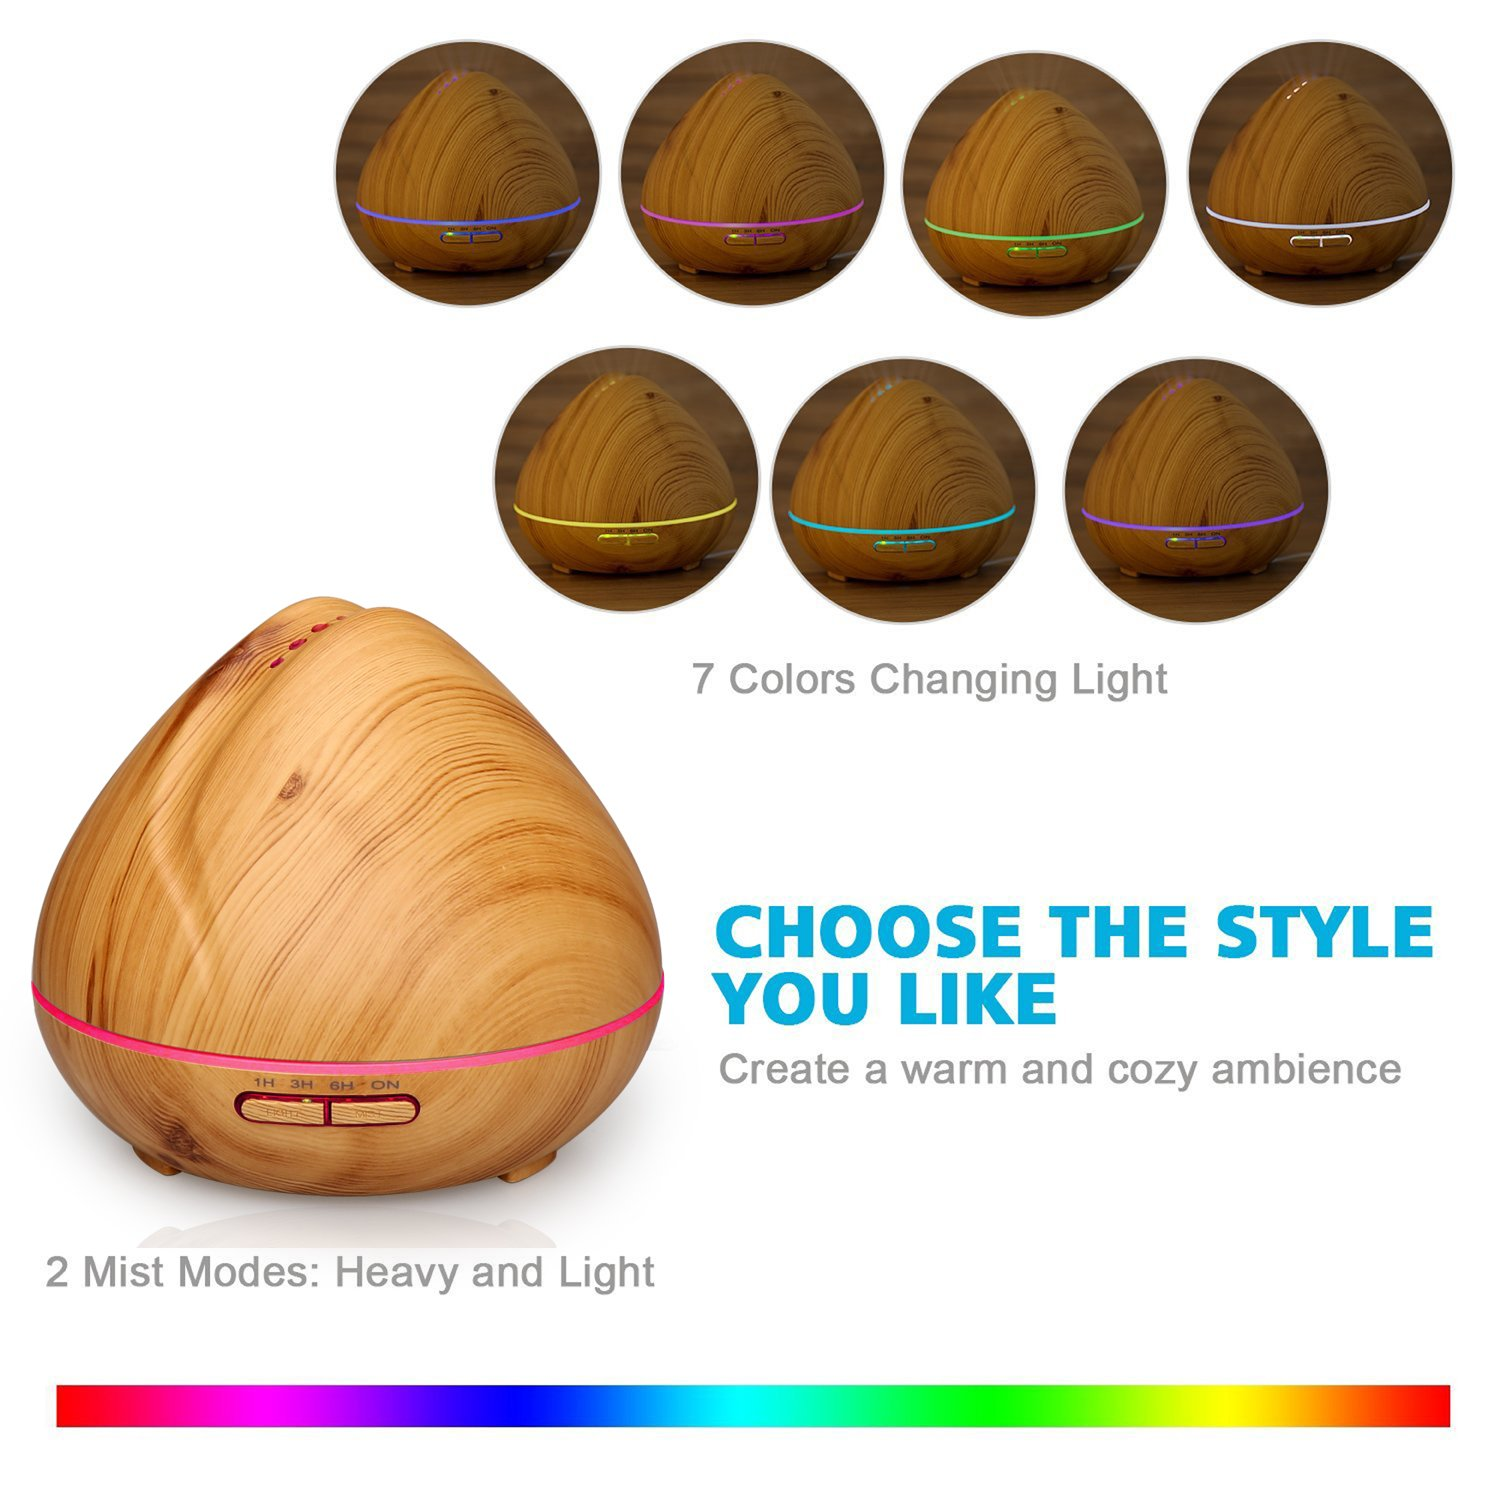 Qkfly Aromatherapy Essential Oil Diffuser Aroma Diffuser Ultrasonic Cool Mist Humidifier with 7 Color LED Lights Changing Waterless Auto Shut Off for Home Office Bedroom Room 400ml Wood Grain by Qkfly (Image #3)